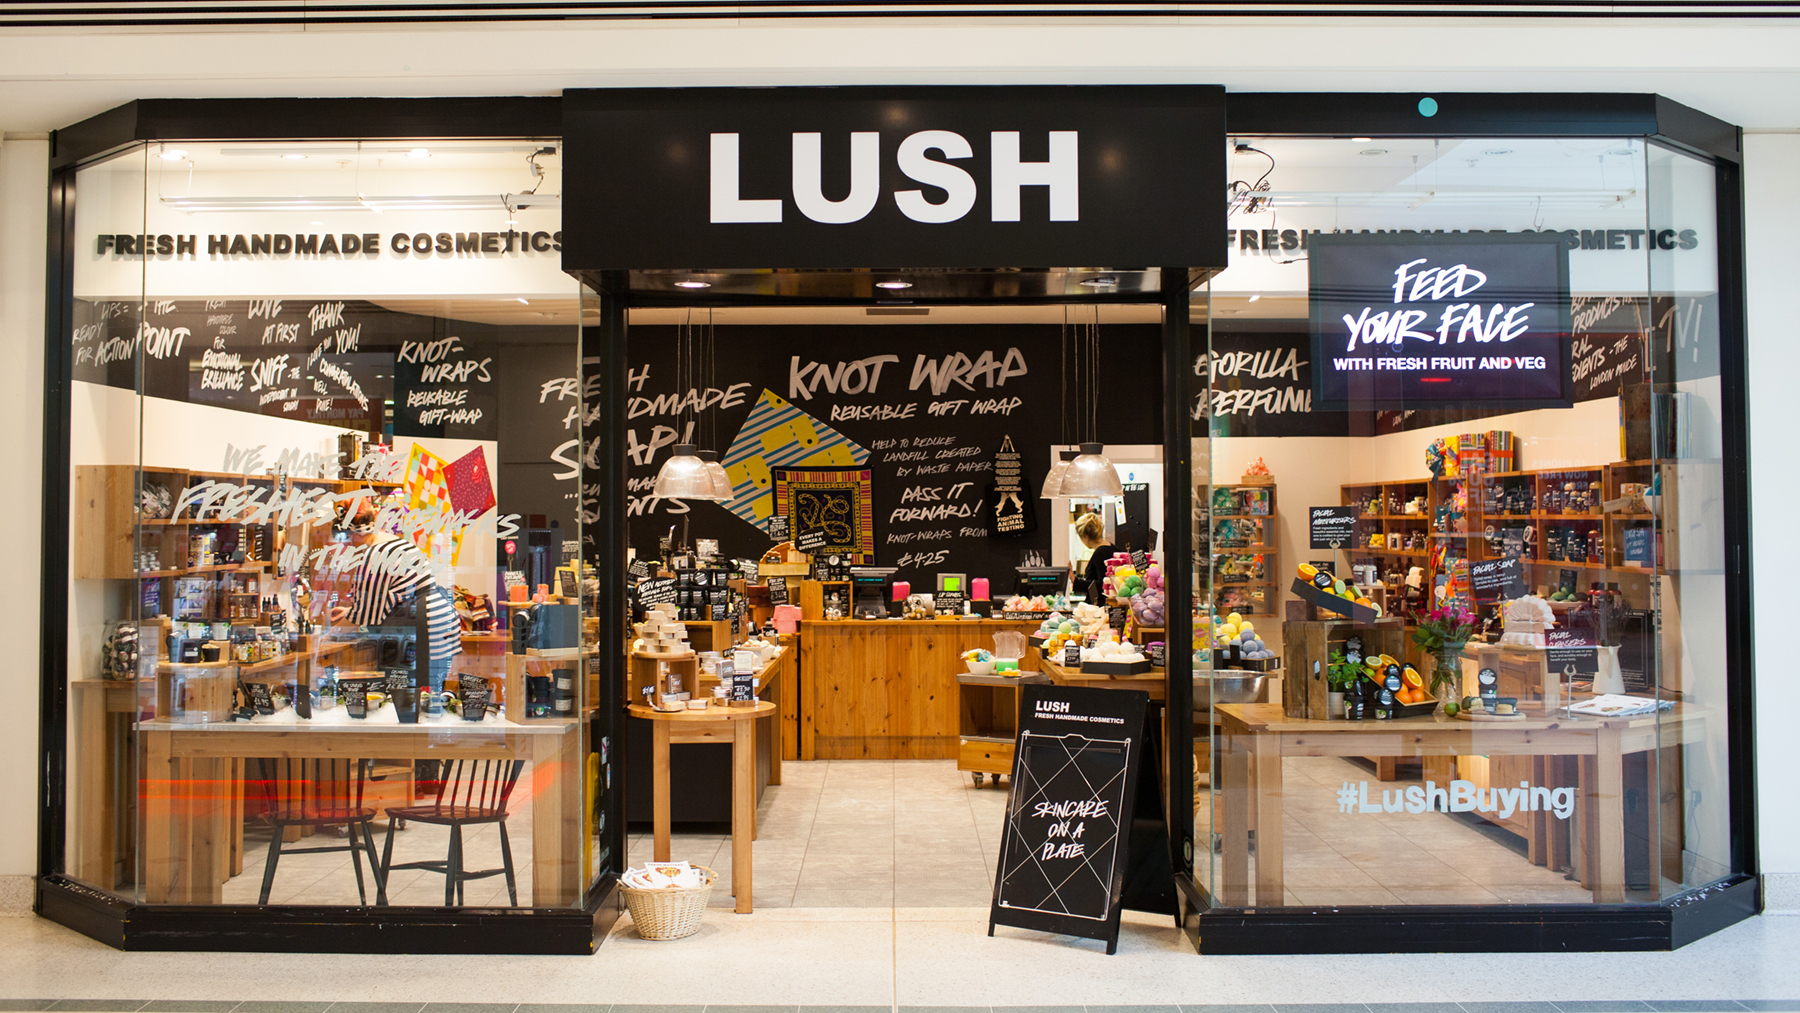 Bromley | Lush Fresh Handmade Cosmetics UK